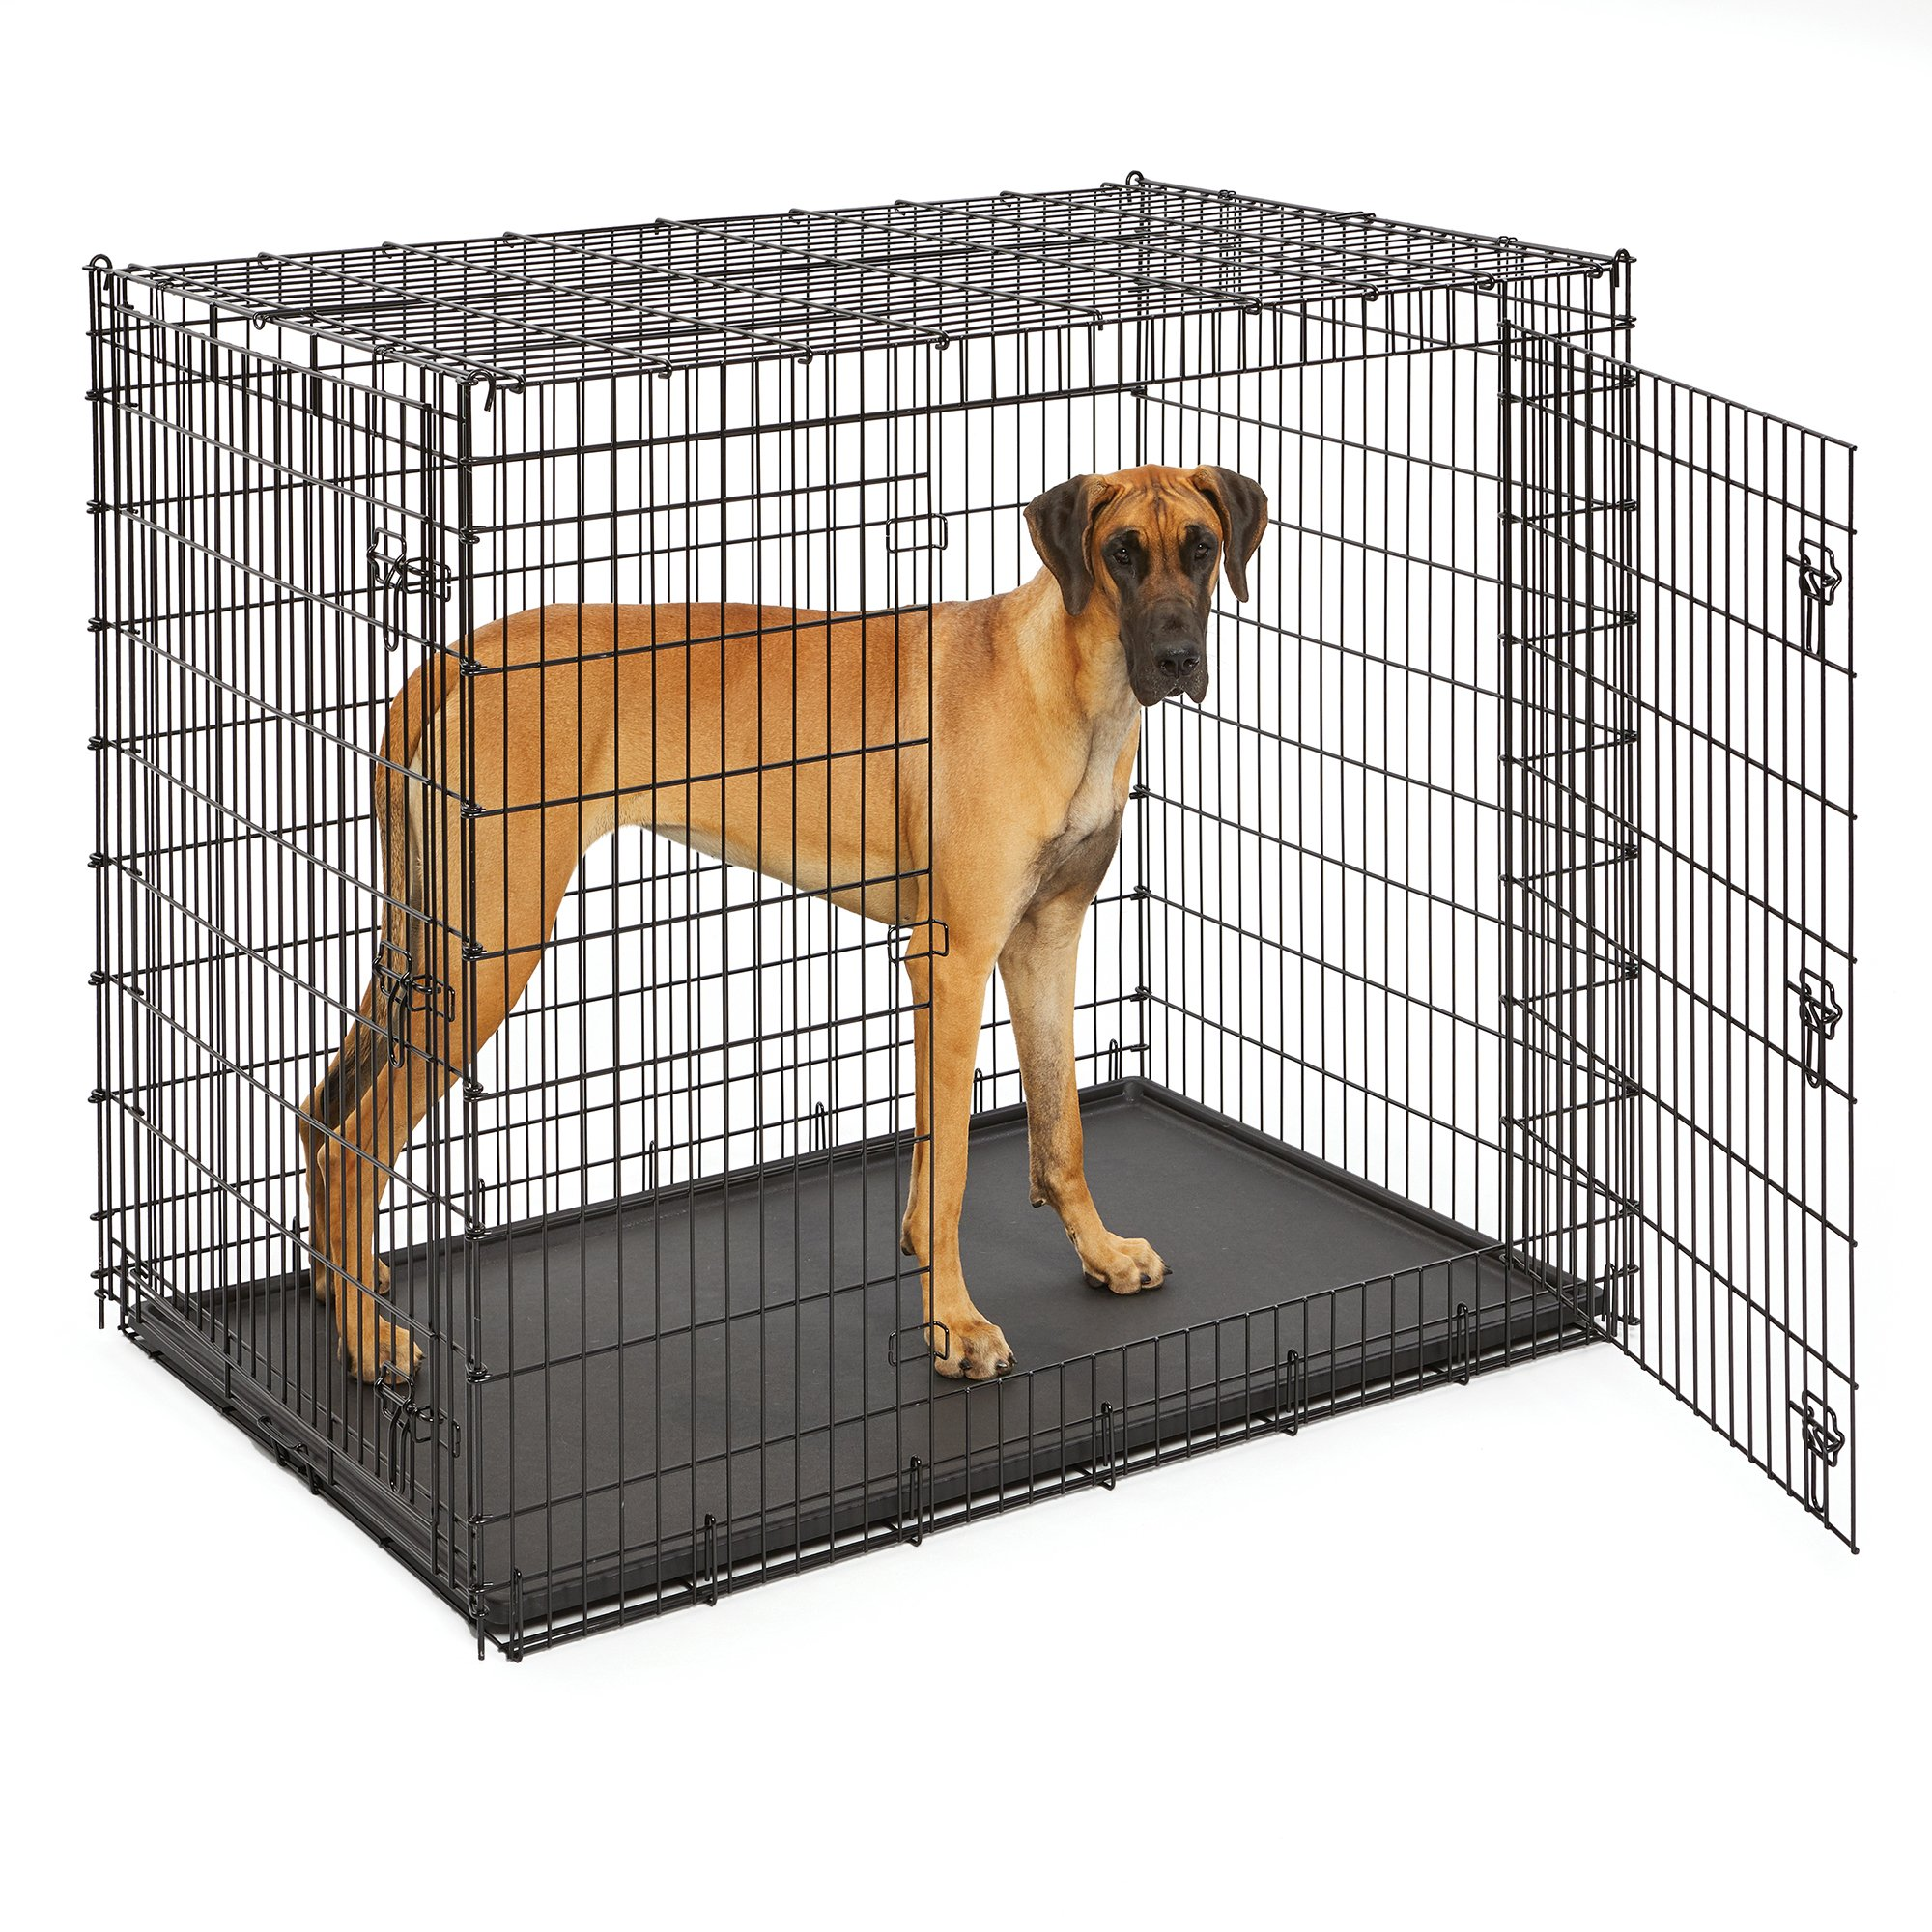 MidWest Homes for Pets XXL Giant Dog Crate | 54-Inch Long Ginormous Double Door Dog Crate Ideal for a Great Dane, Mastiff, St. Bernard & Other XXL Dog Breeds by MidWest Homes for Pets